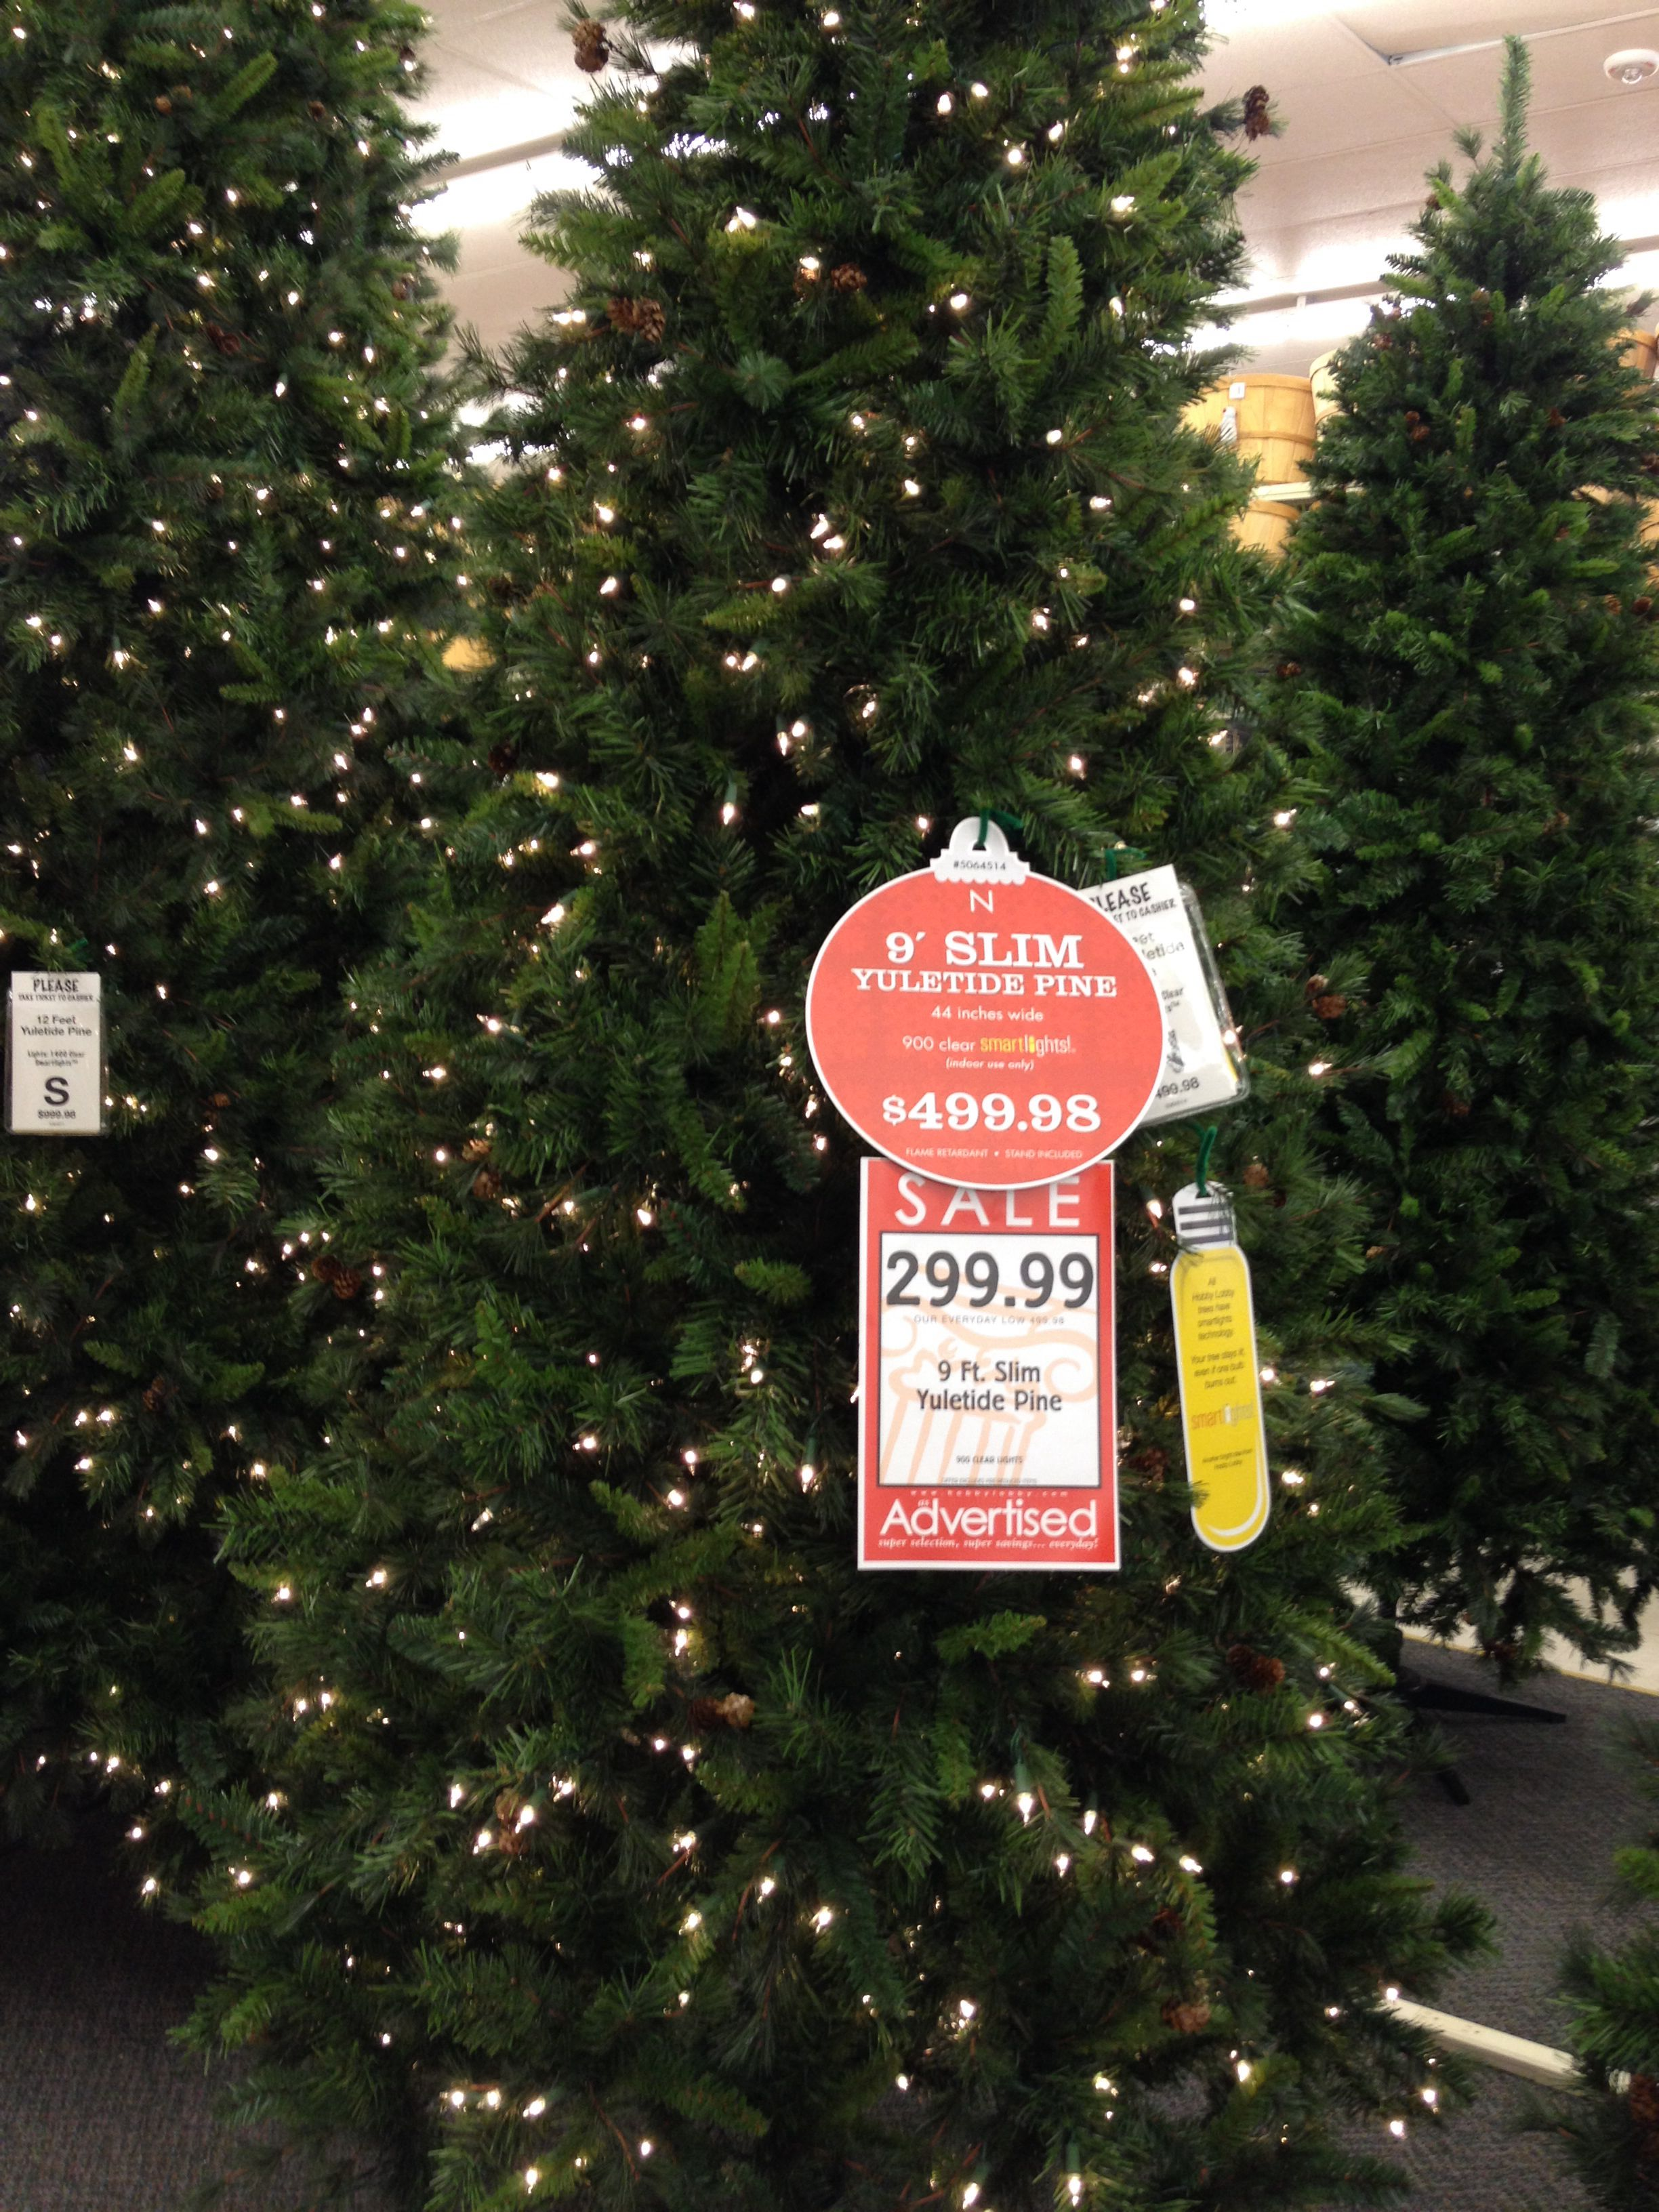 9 ft prelit Christmas tree at Hobby Lobby | Christmas | Pinterest ...